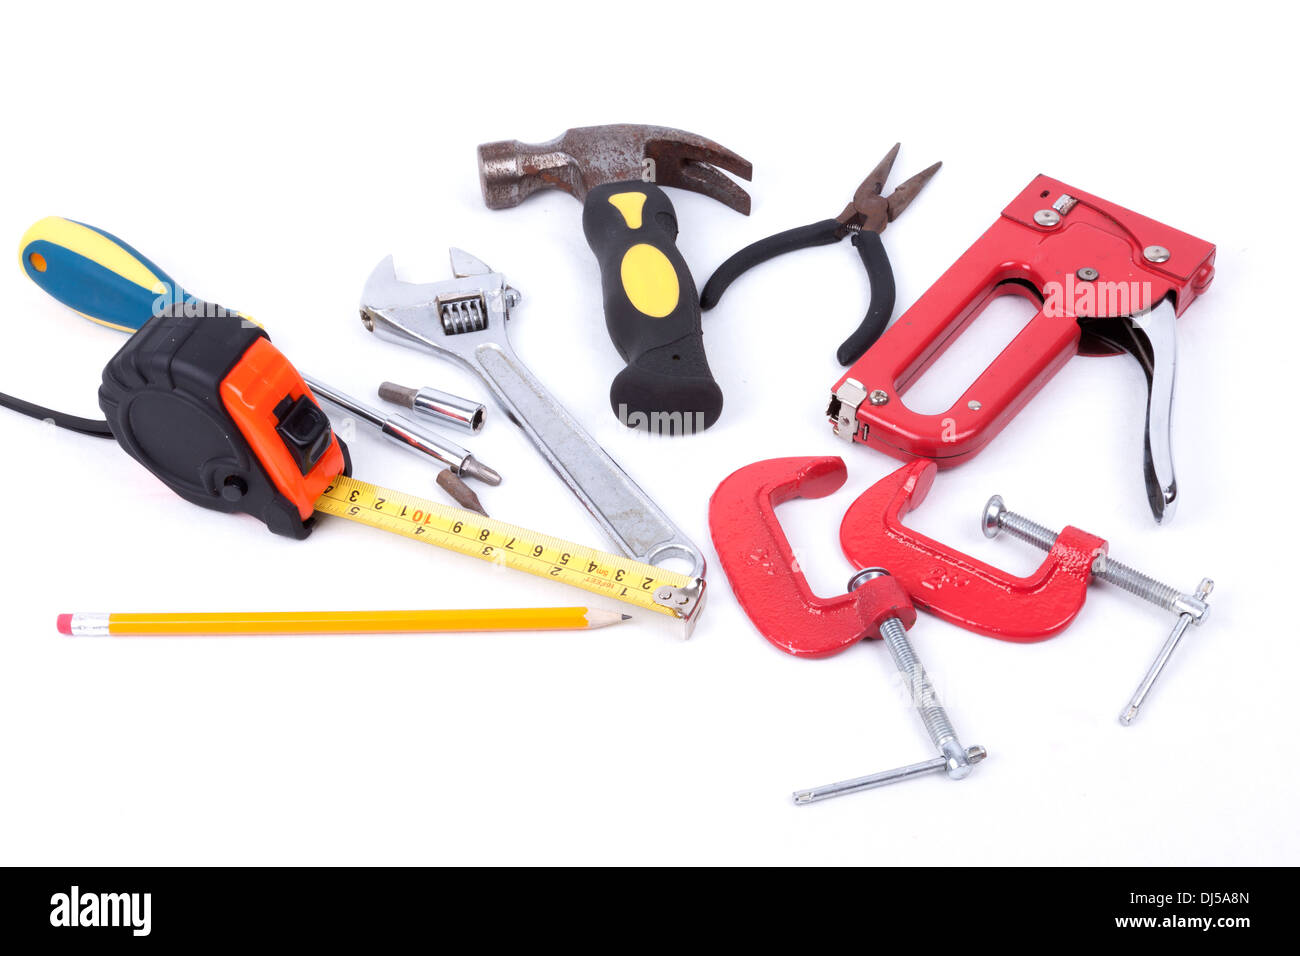 Set of tools isolated on a white background - Stock Image